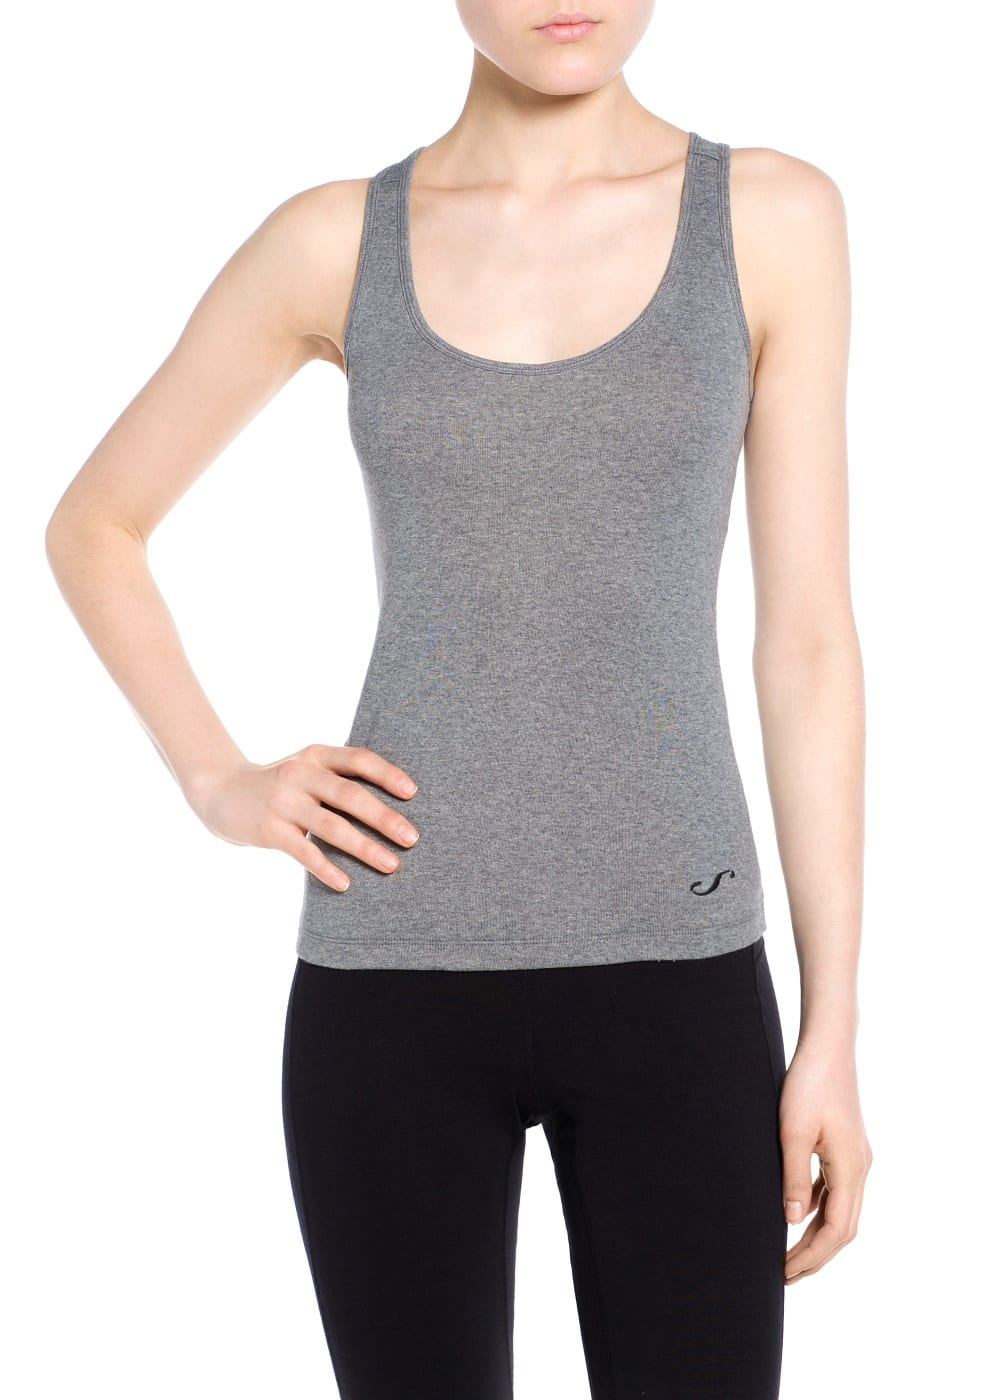 Yoga - Soft sport t-shirt